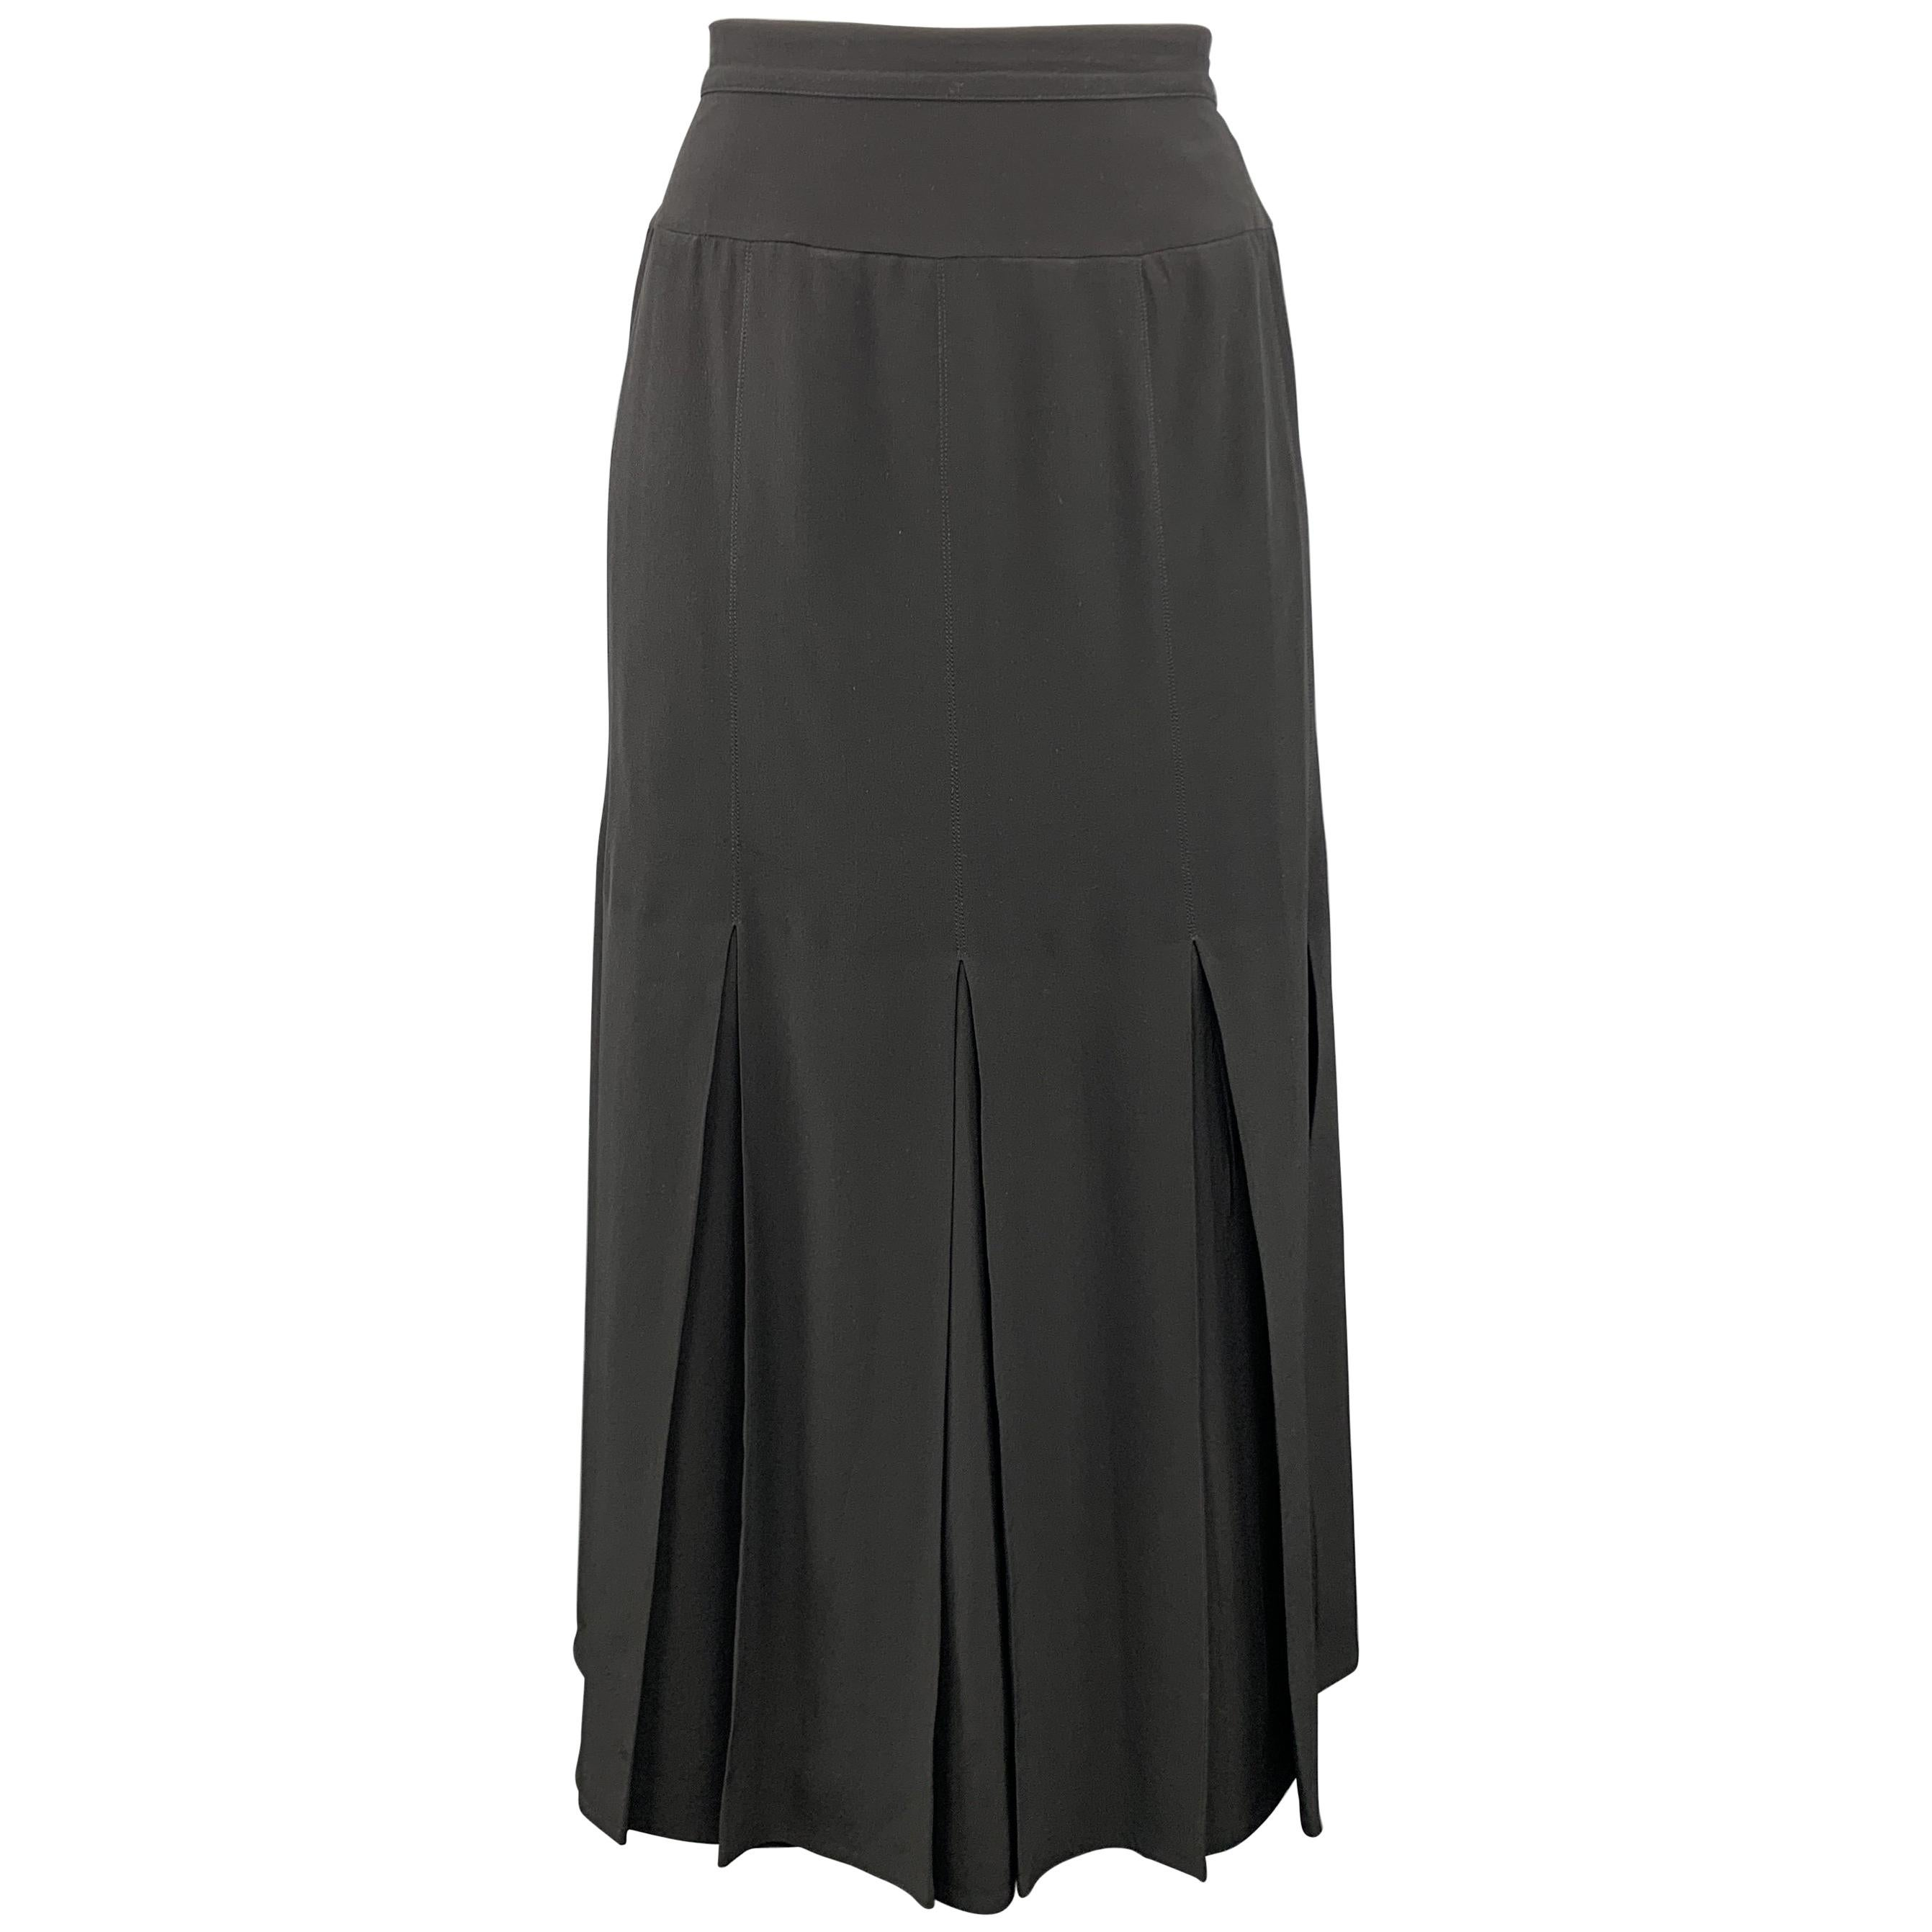 7184df11d7 Sui GENERIS Consignment Skirts - 1stdibs